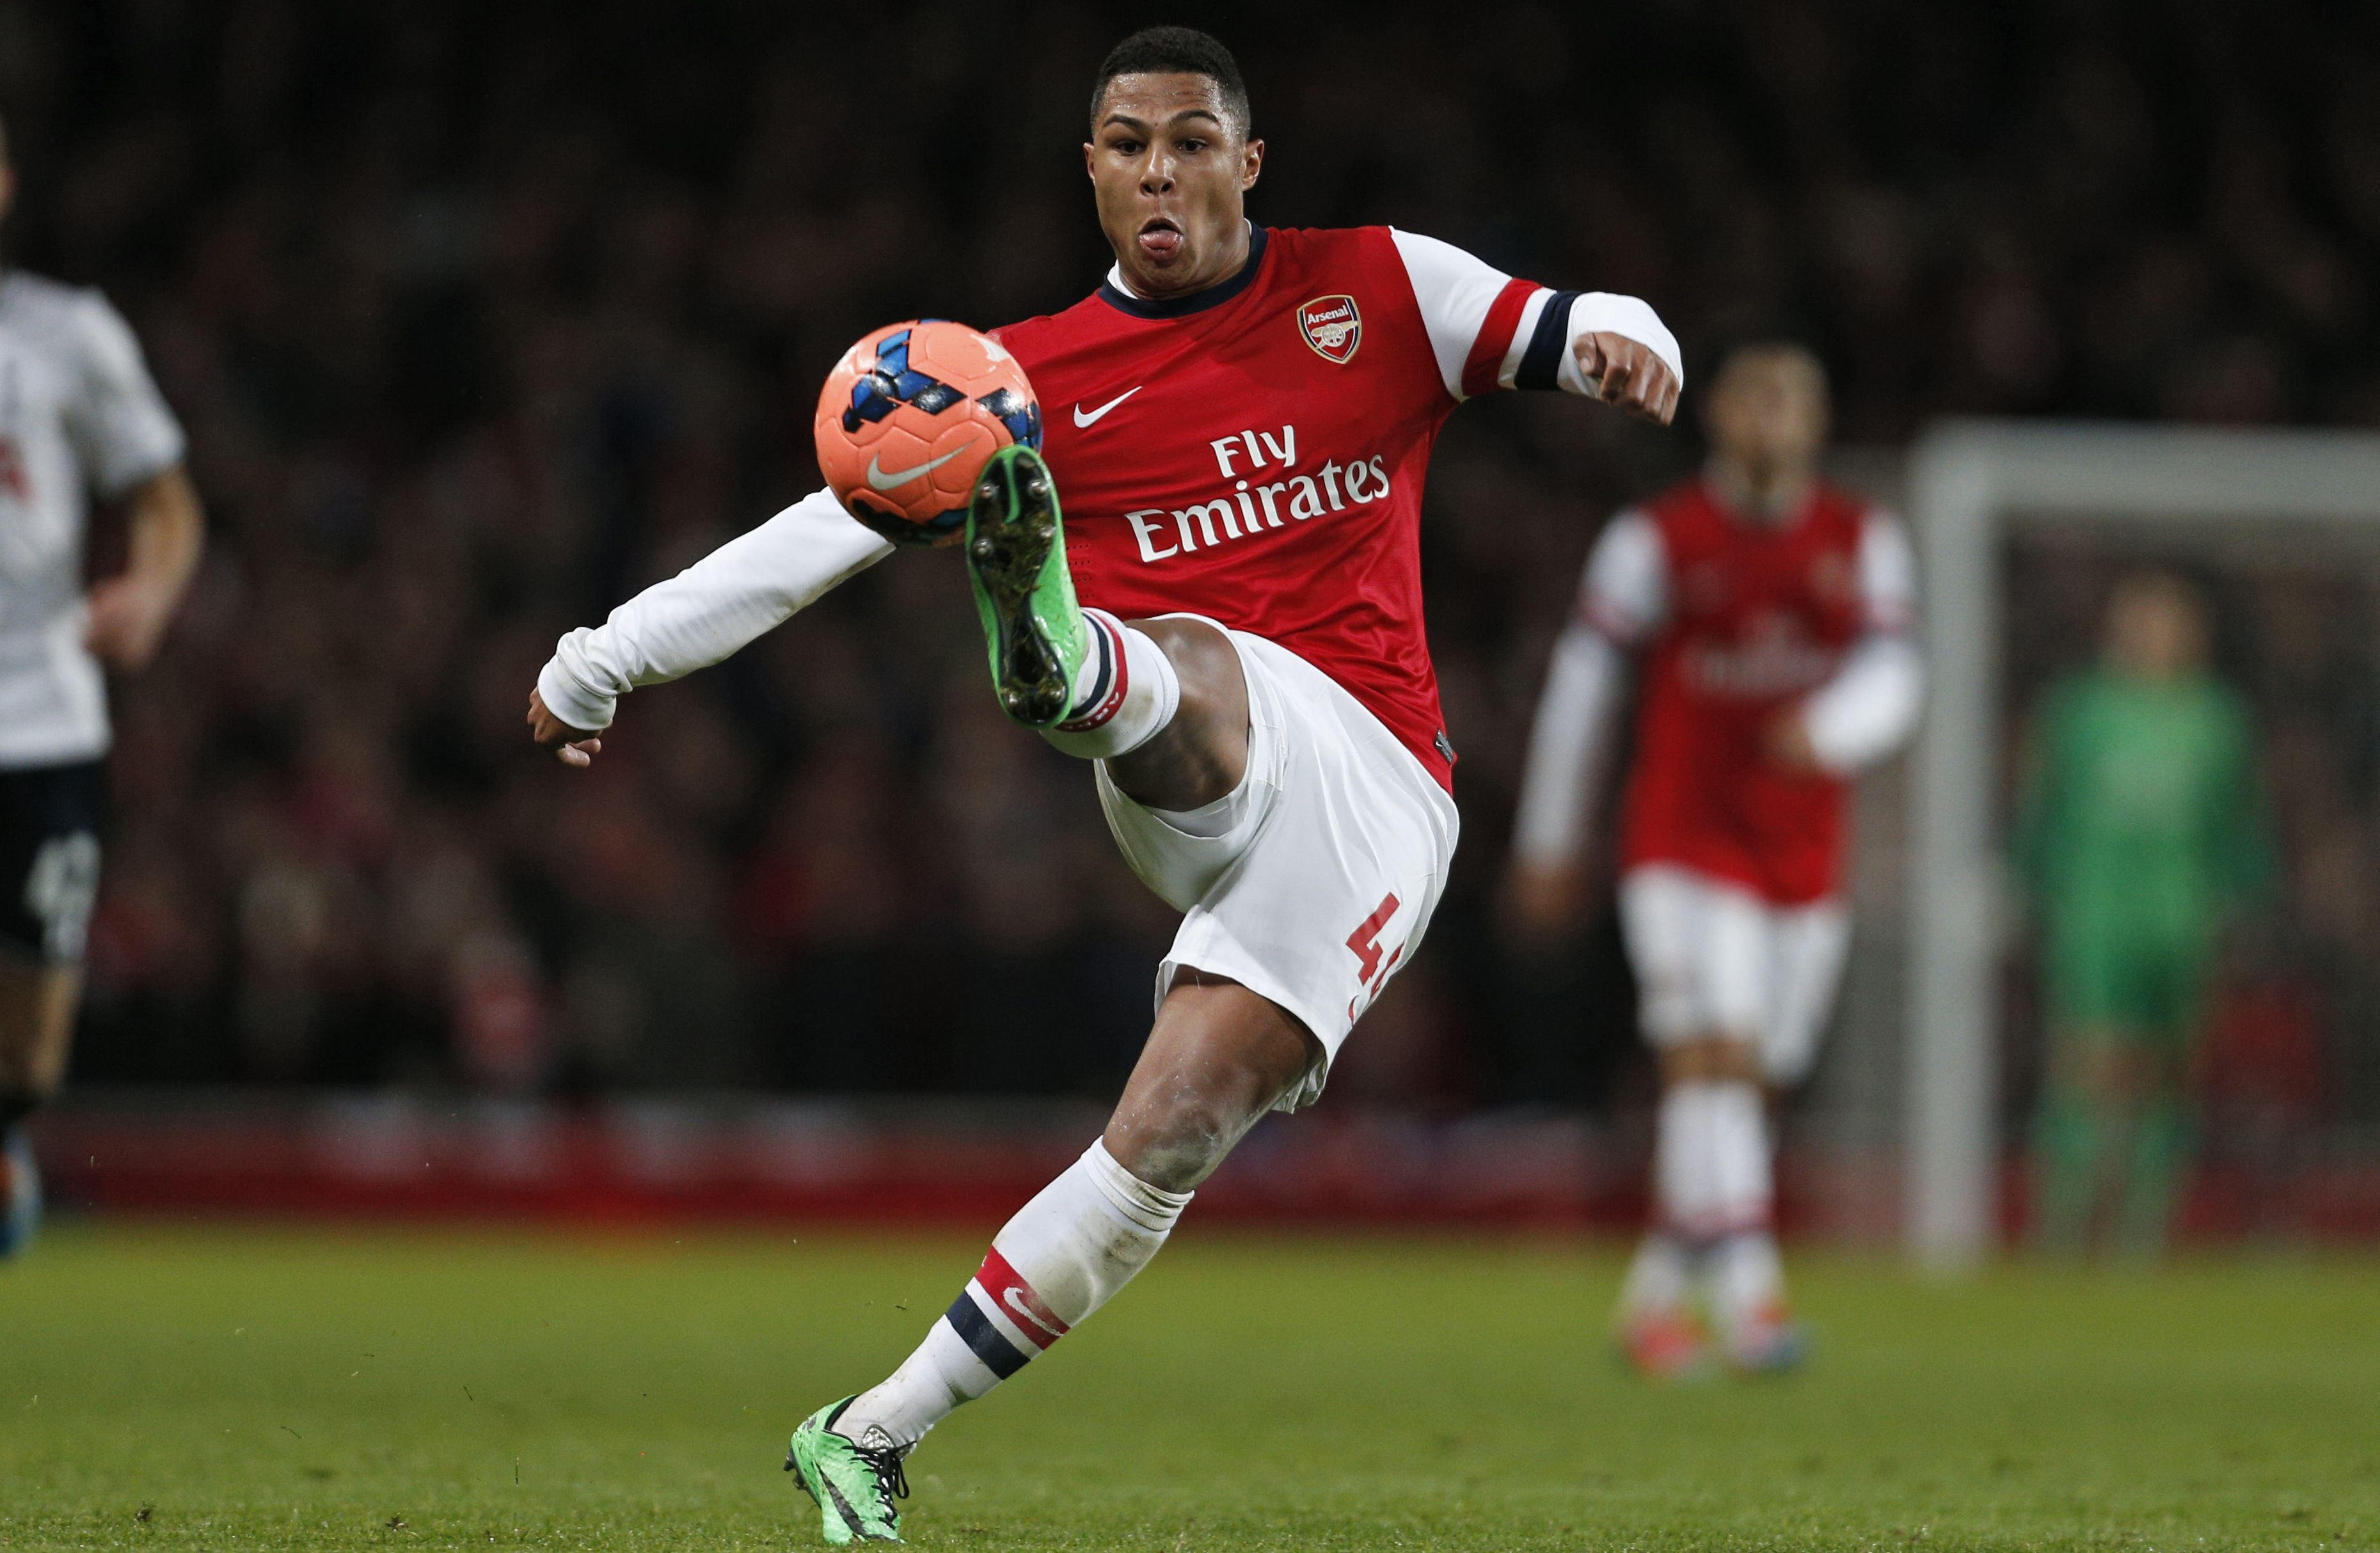 Arsenal winger Serge Gnabry